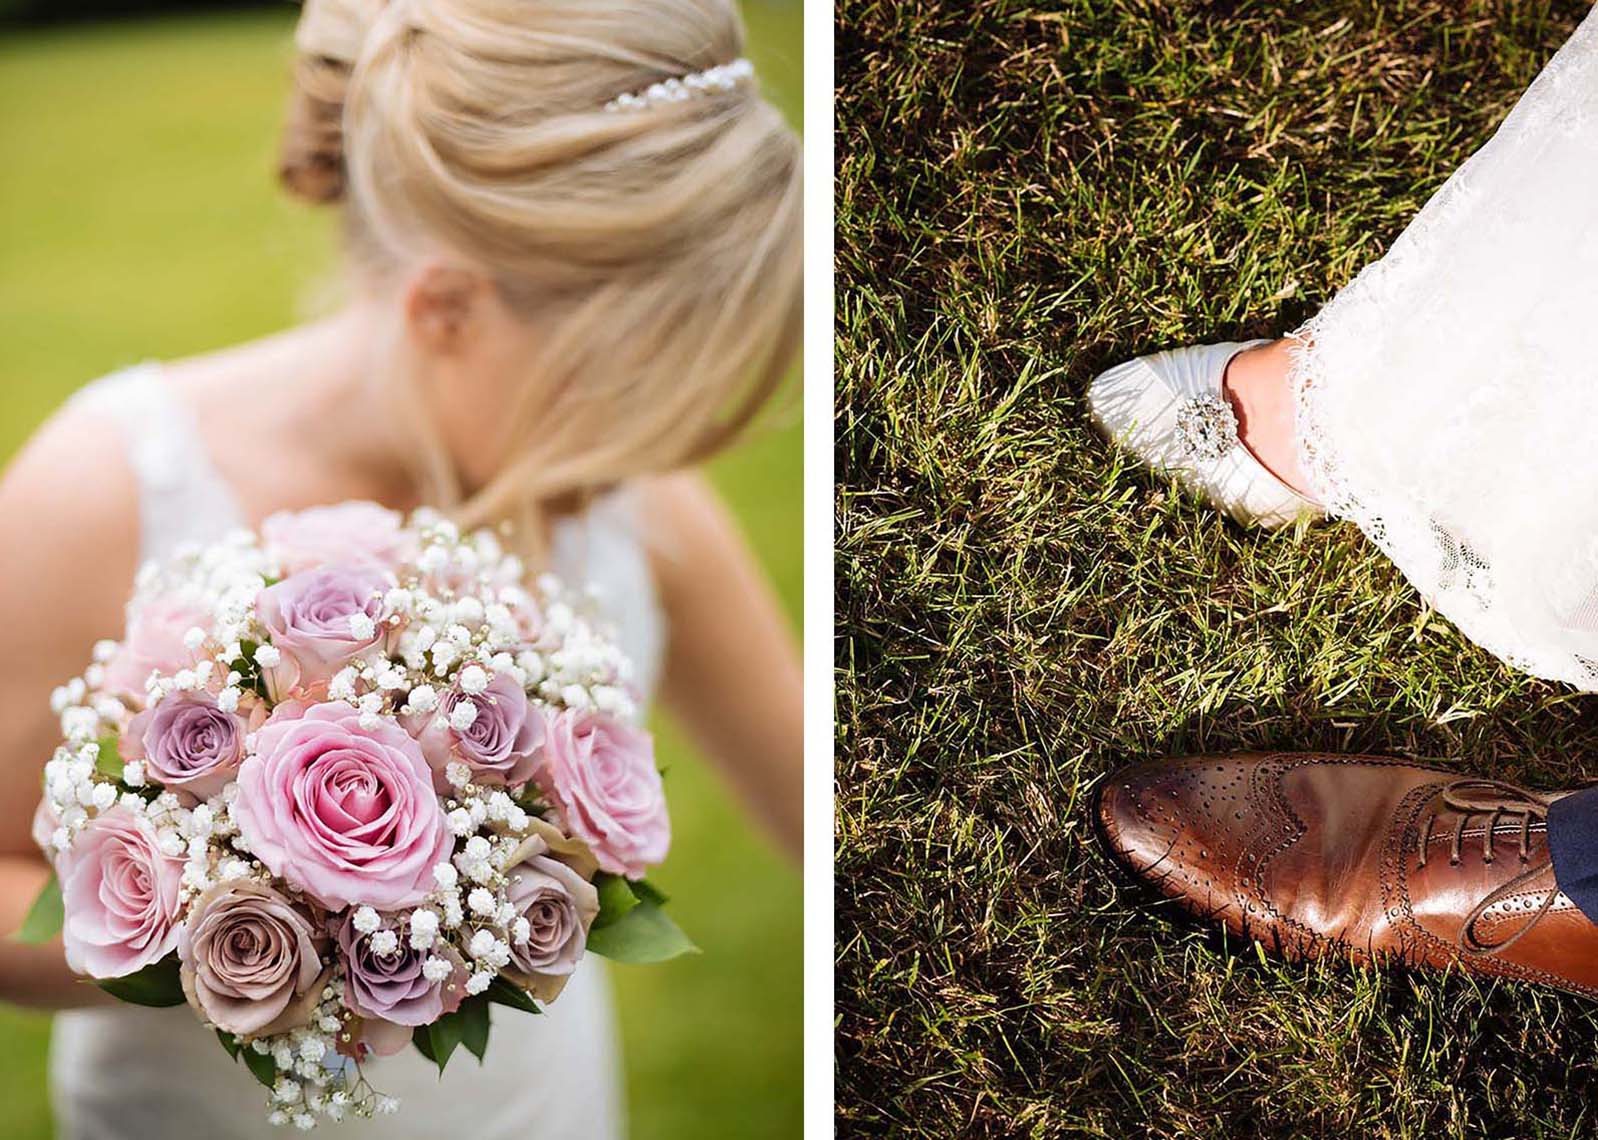 bride-flowers-bouquet-groom-shoes-together-brogue-brown-21